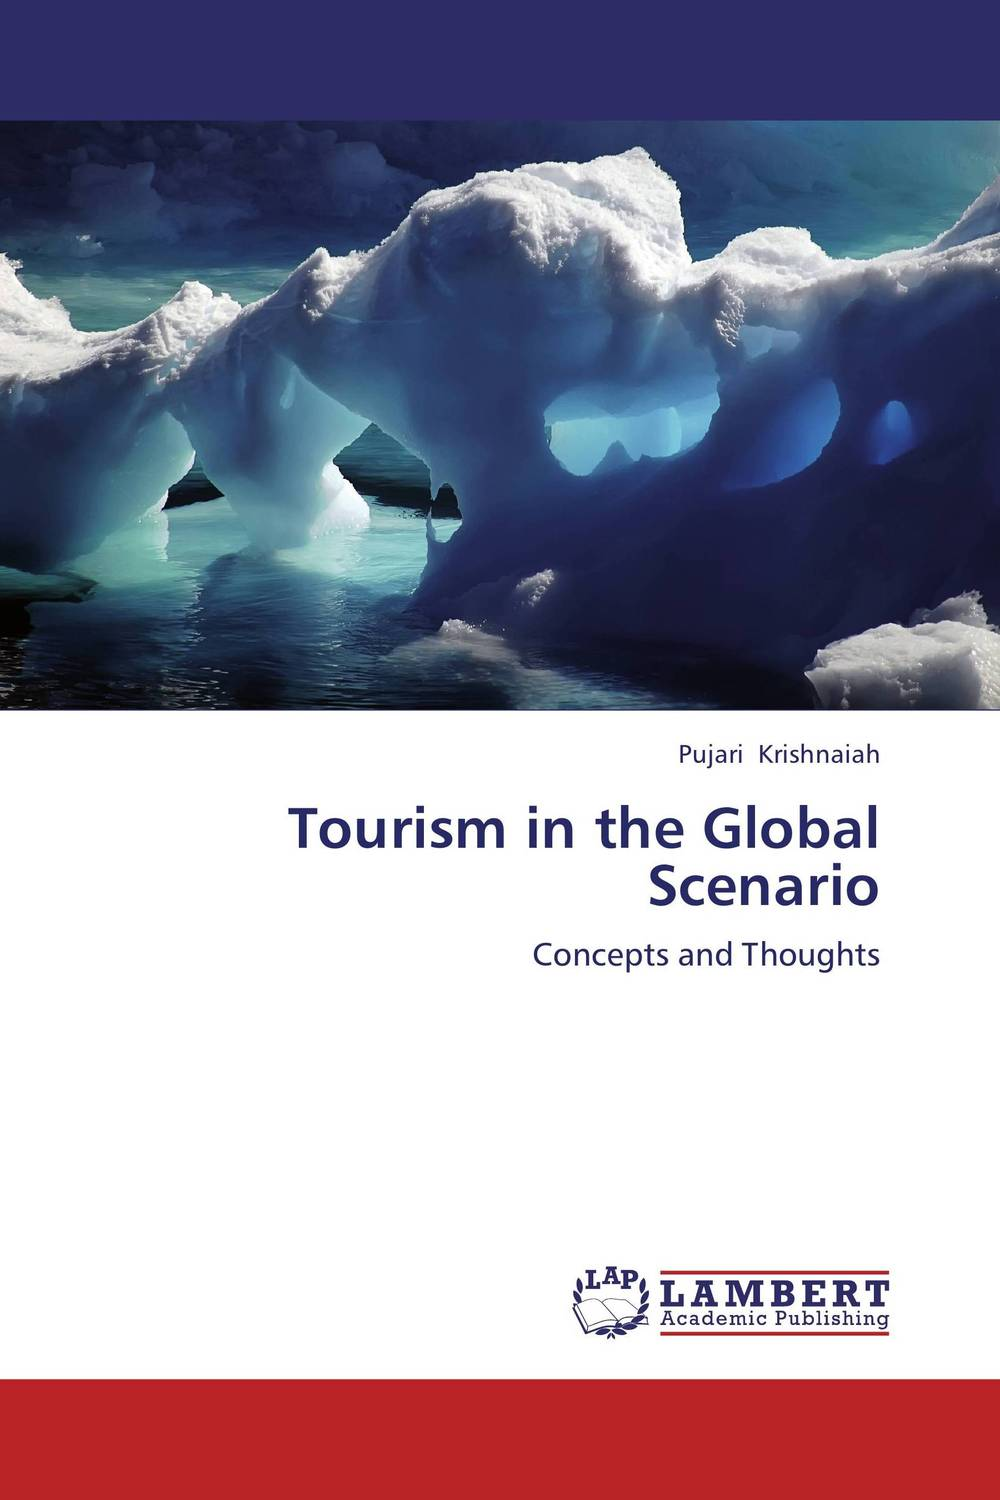 Tourism in the Global Scenario